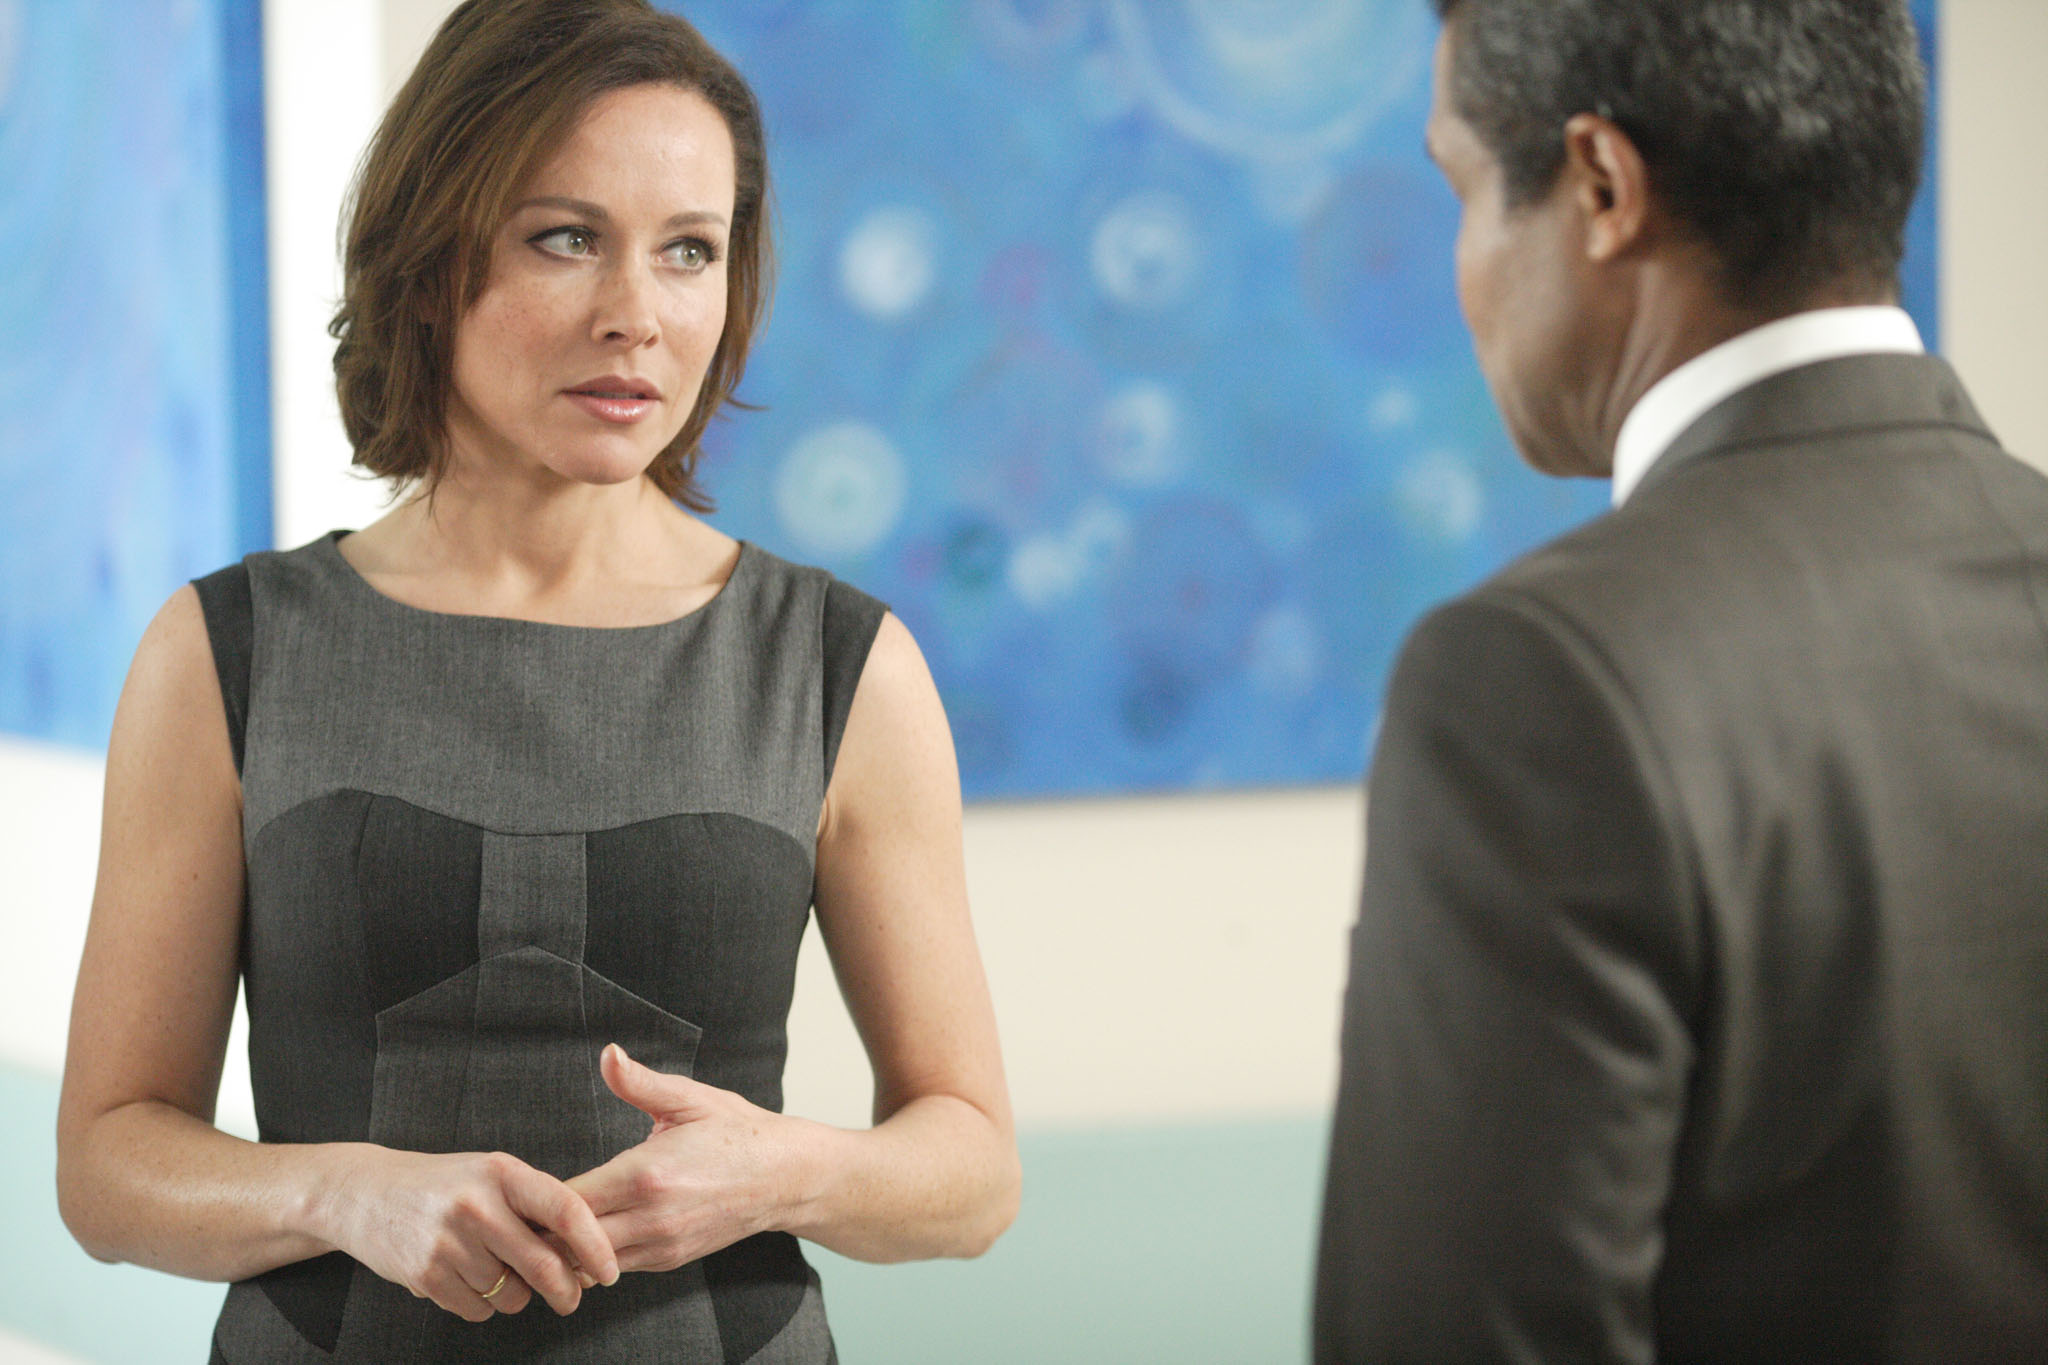 A quick chat with Holby's Amanda Mealing